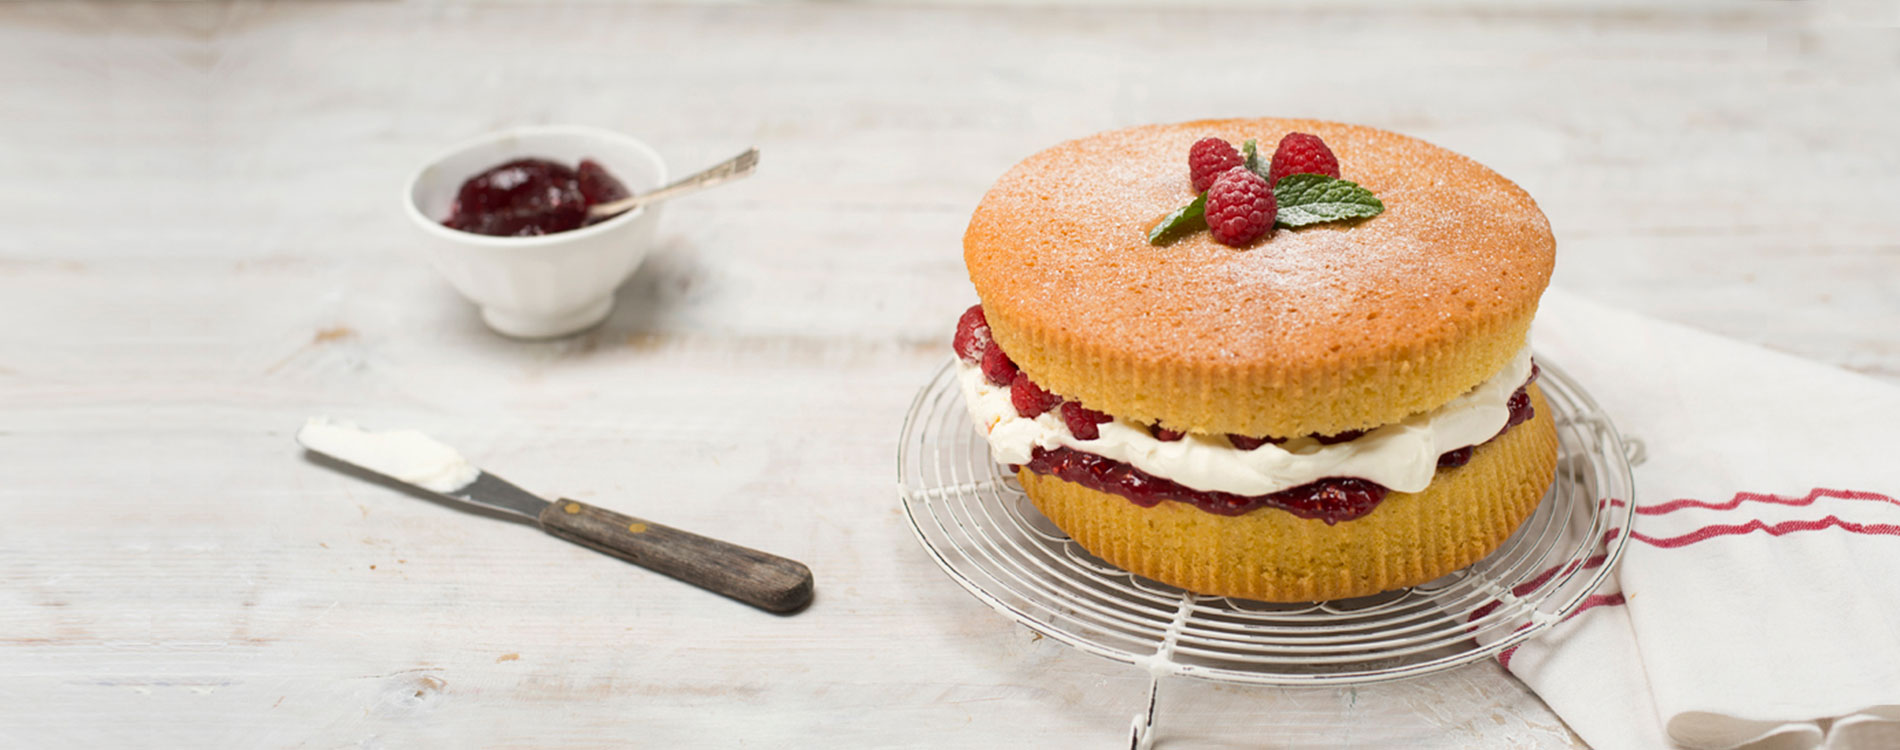 Victoria Sponge made with rapeseed oil